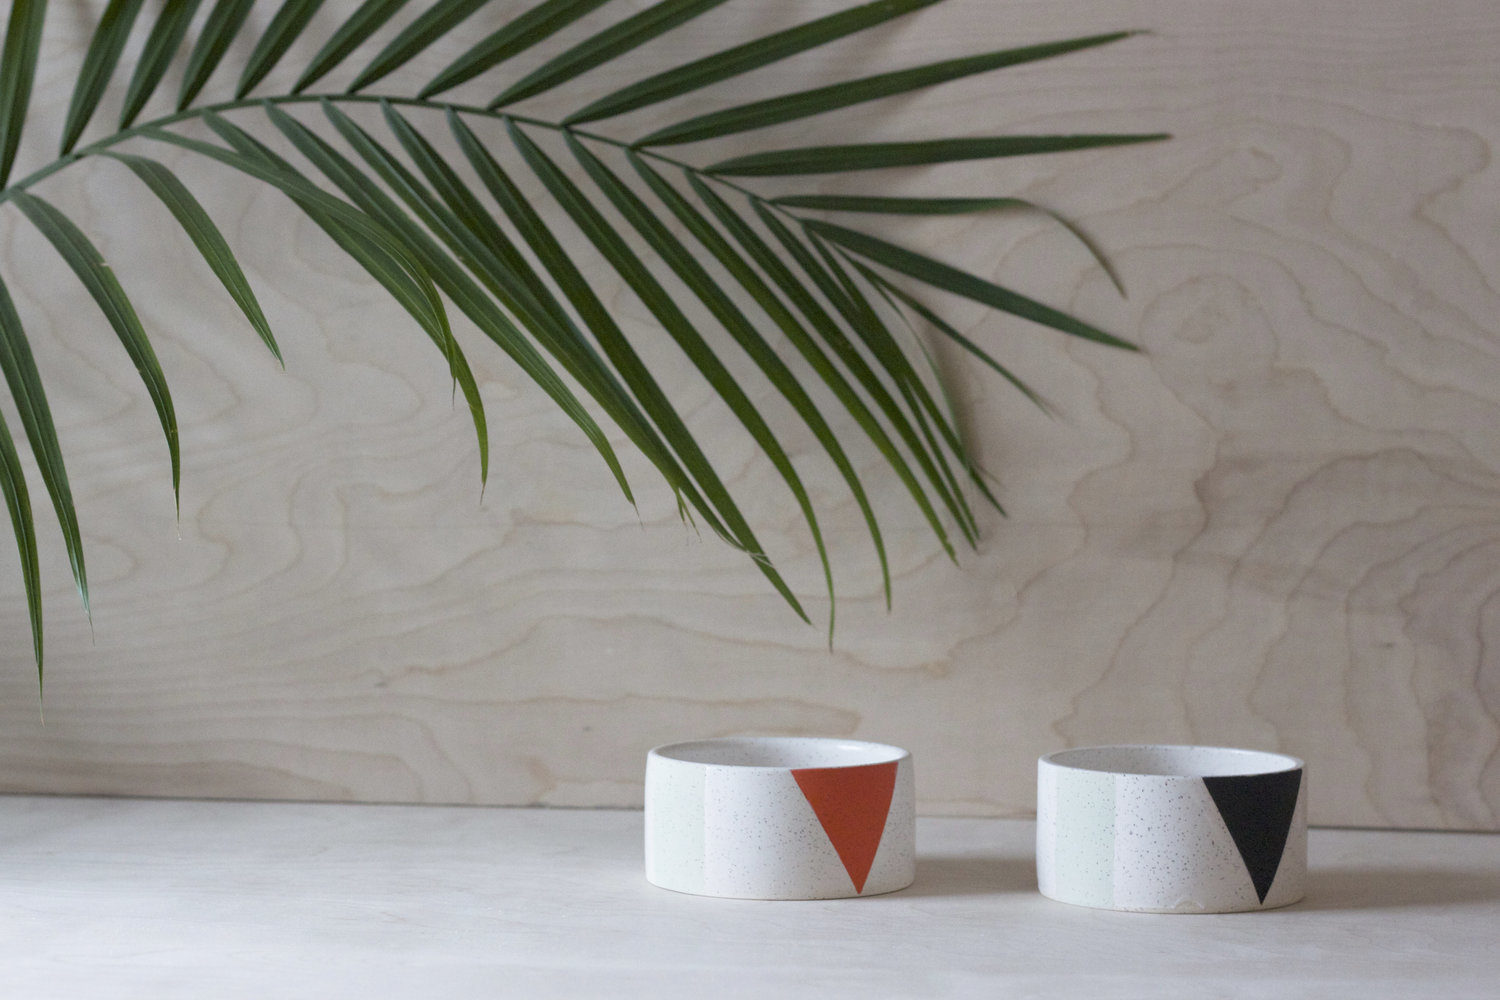 palm branch in front of a grain wood background featuring two white ceramic pet bowls with an orange triangle and black triangle